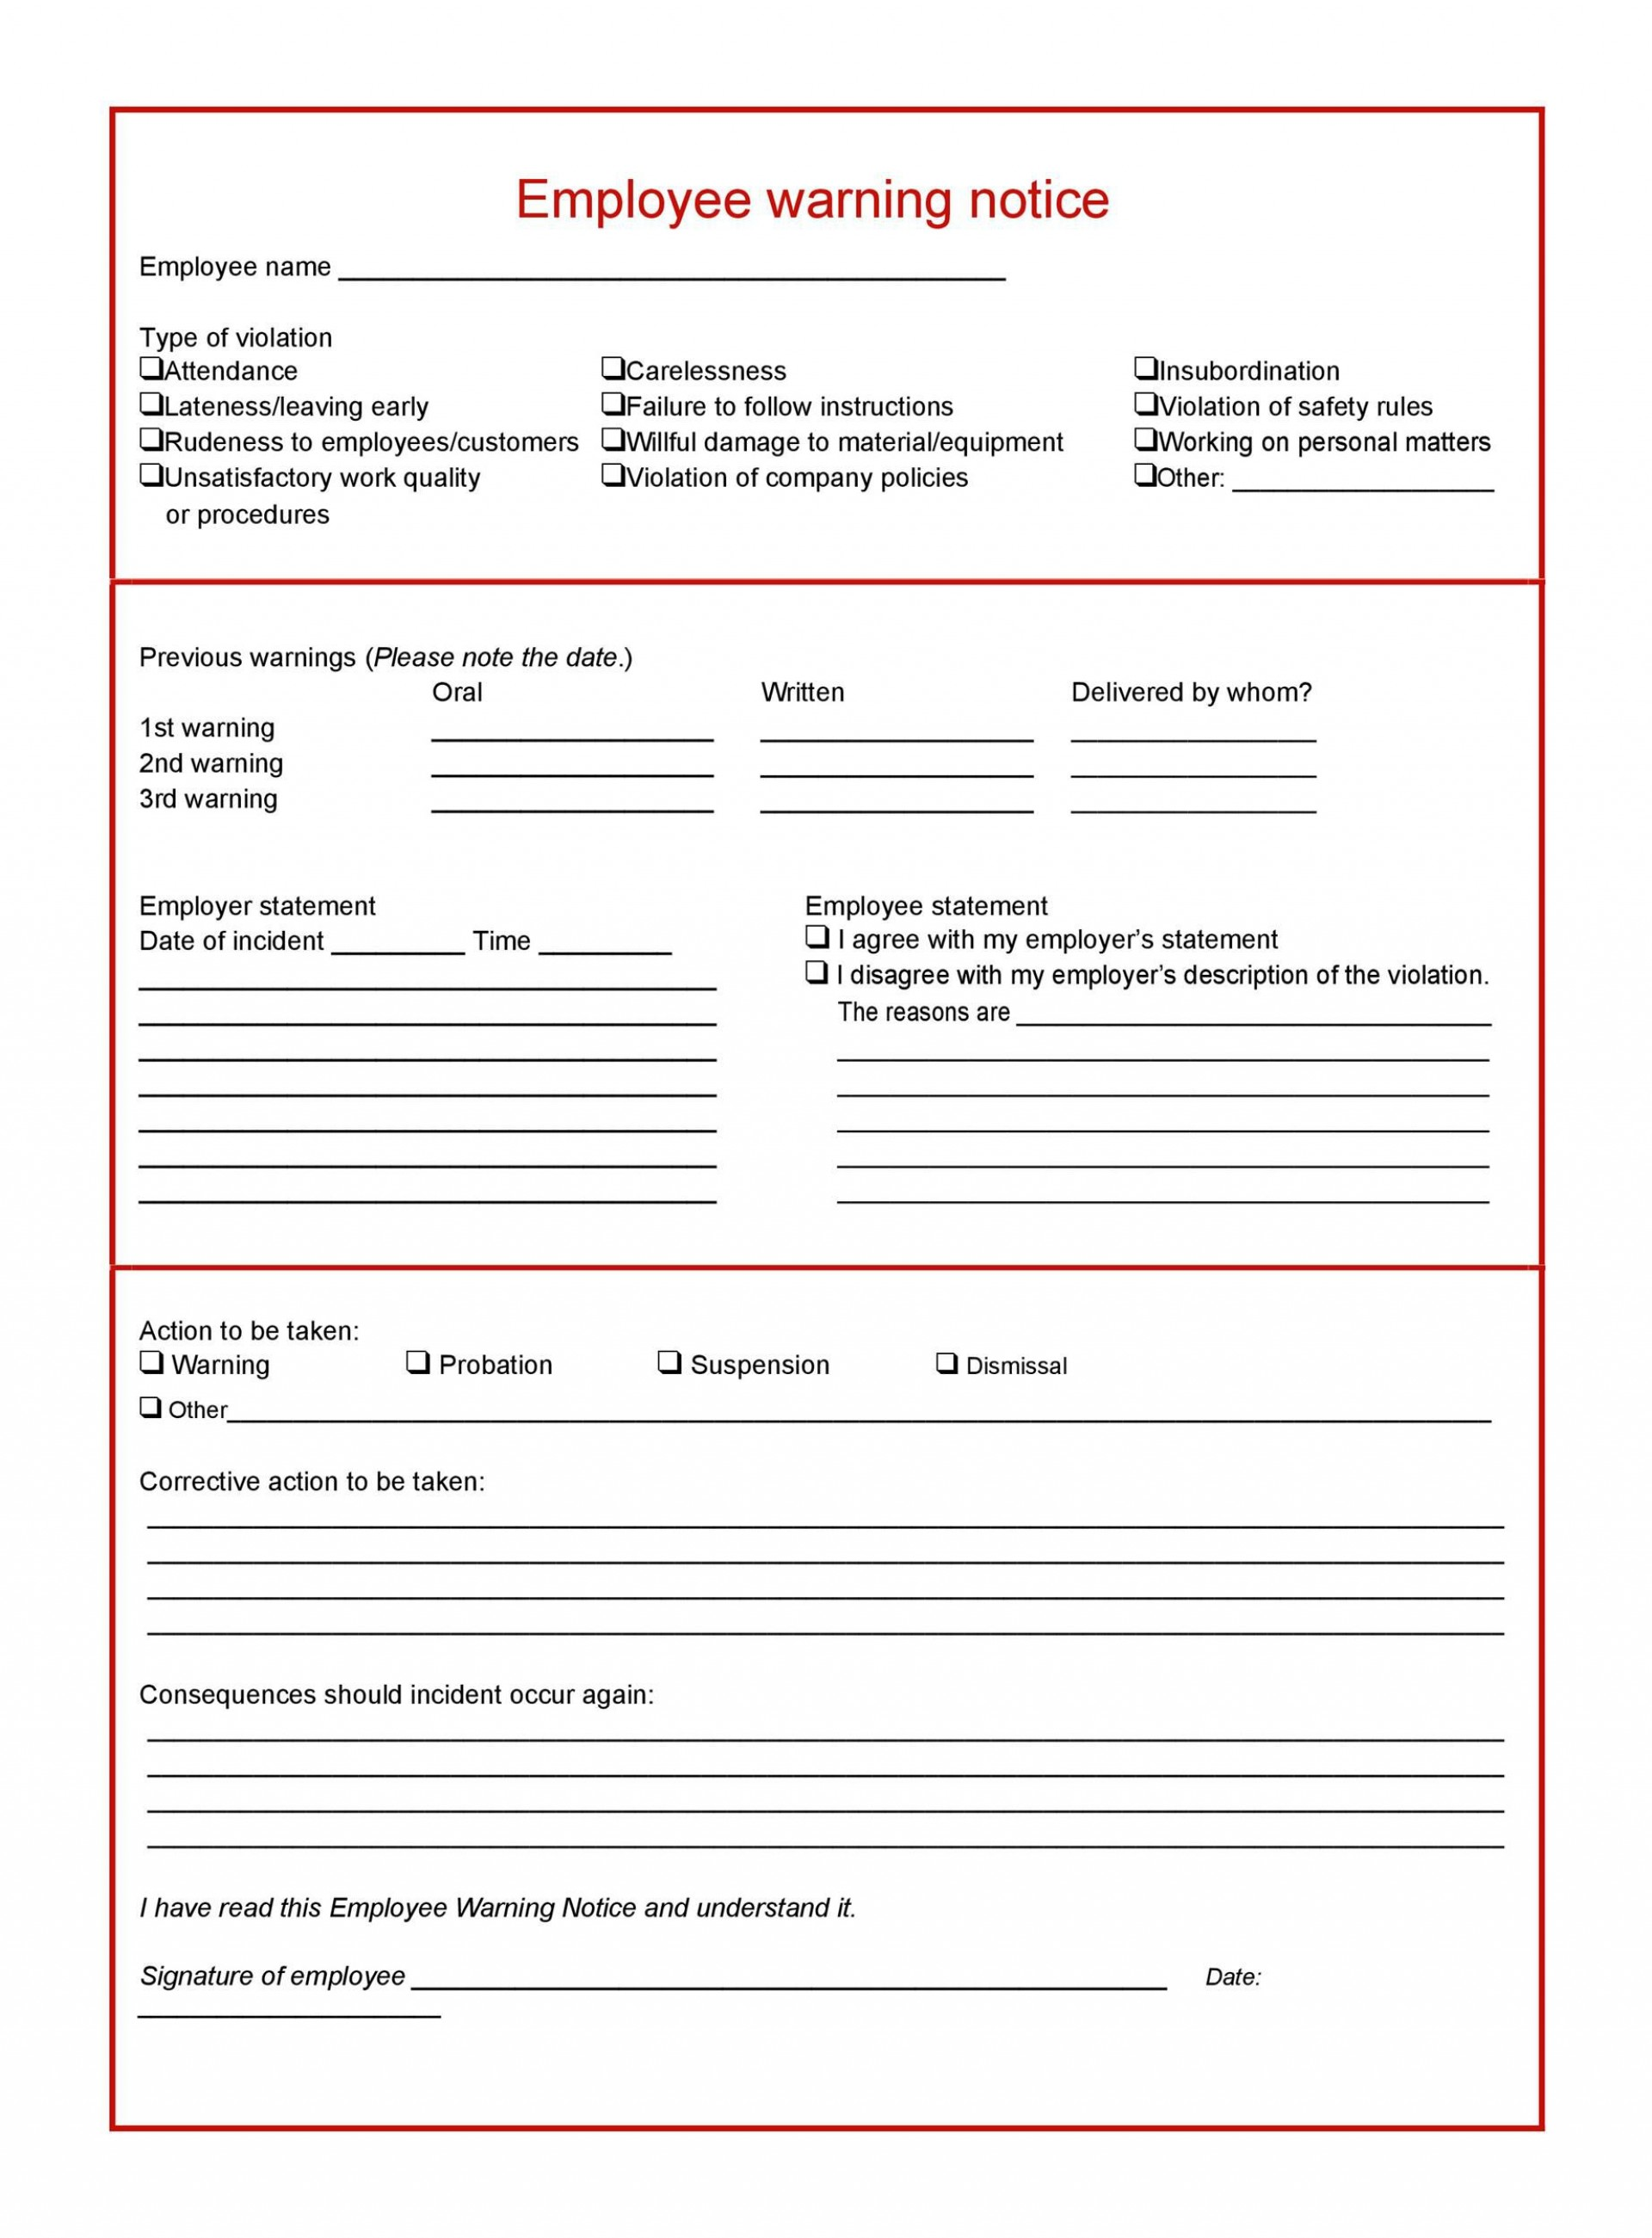 006 Breathtaking Employee Warning Notice Template Word Highest Quality 1920